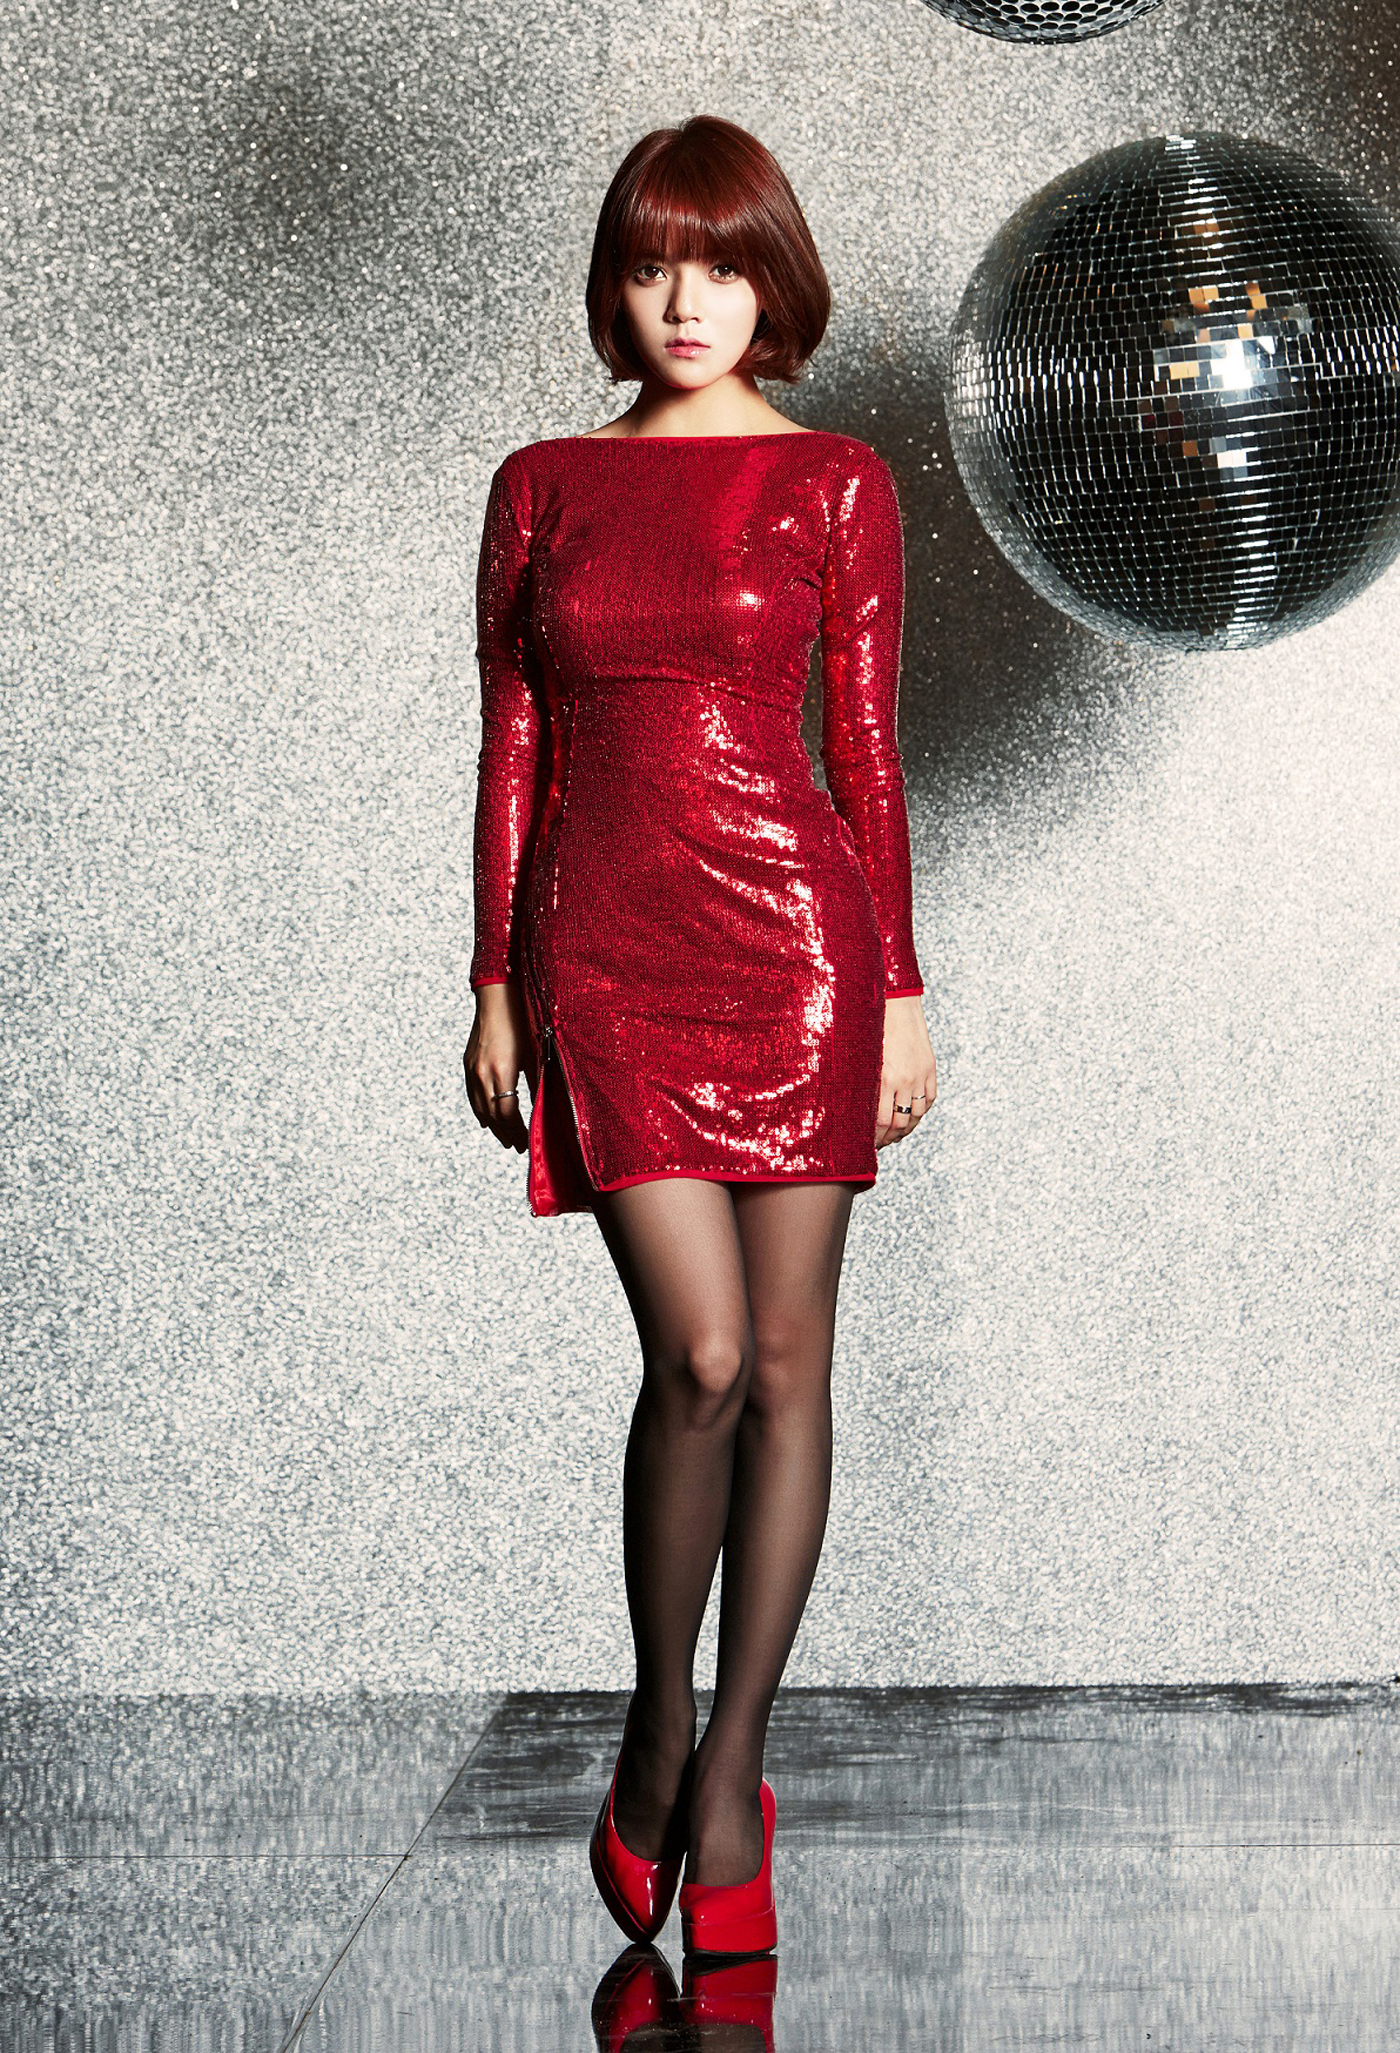 Red dress red shoes kpop